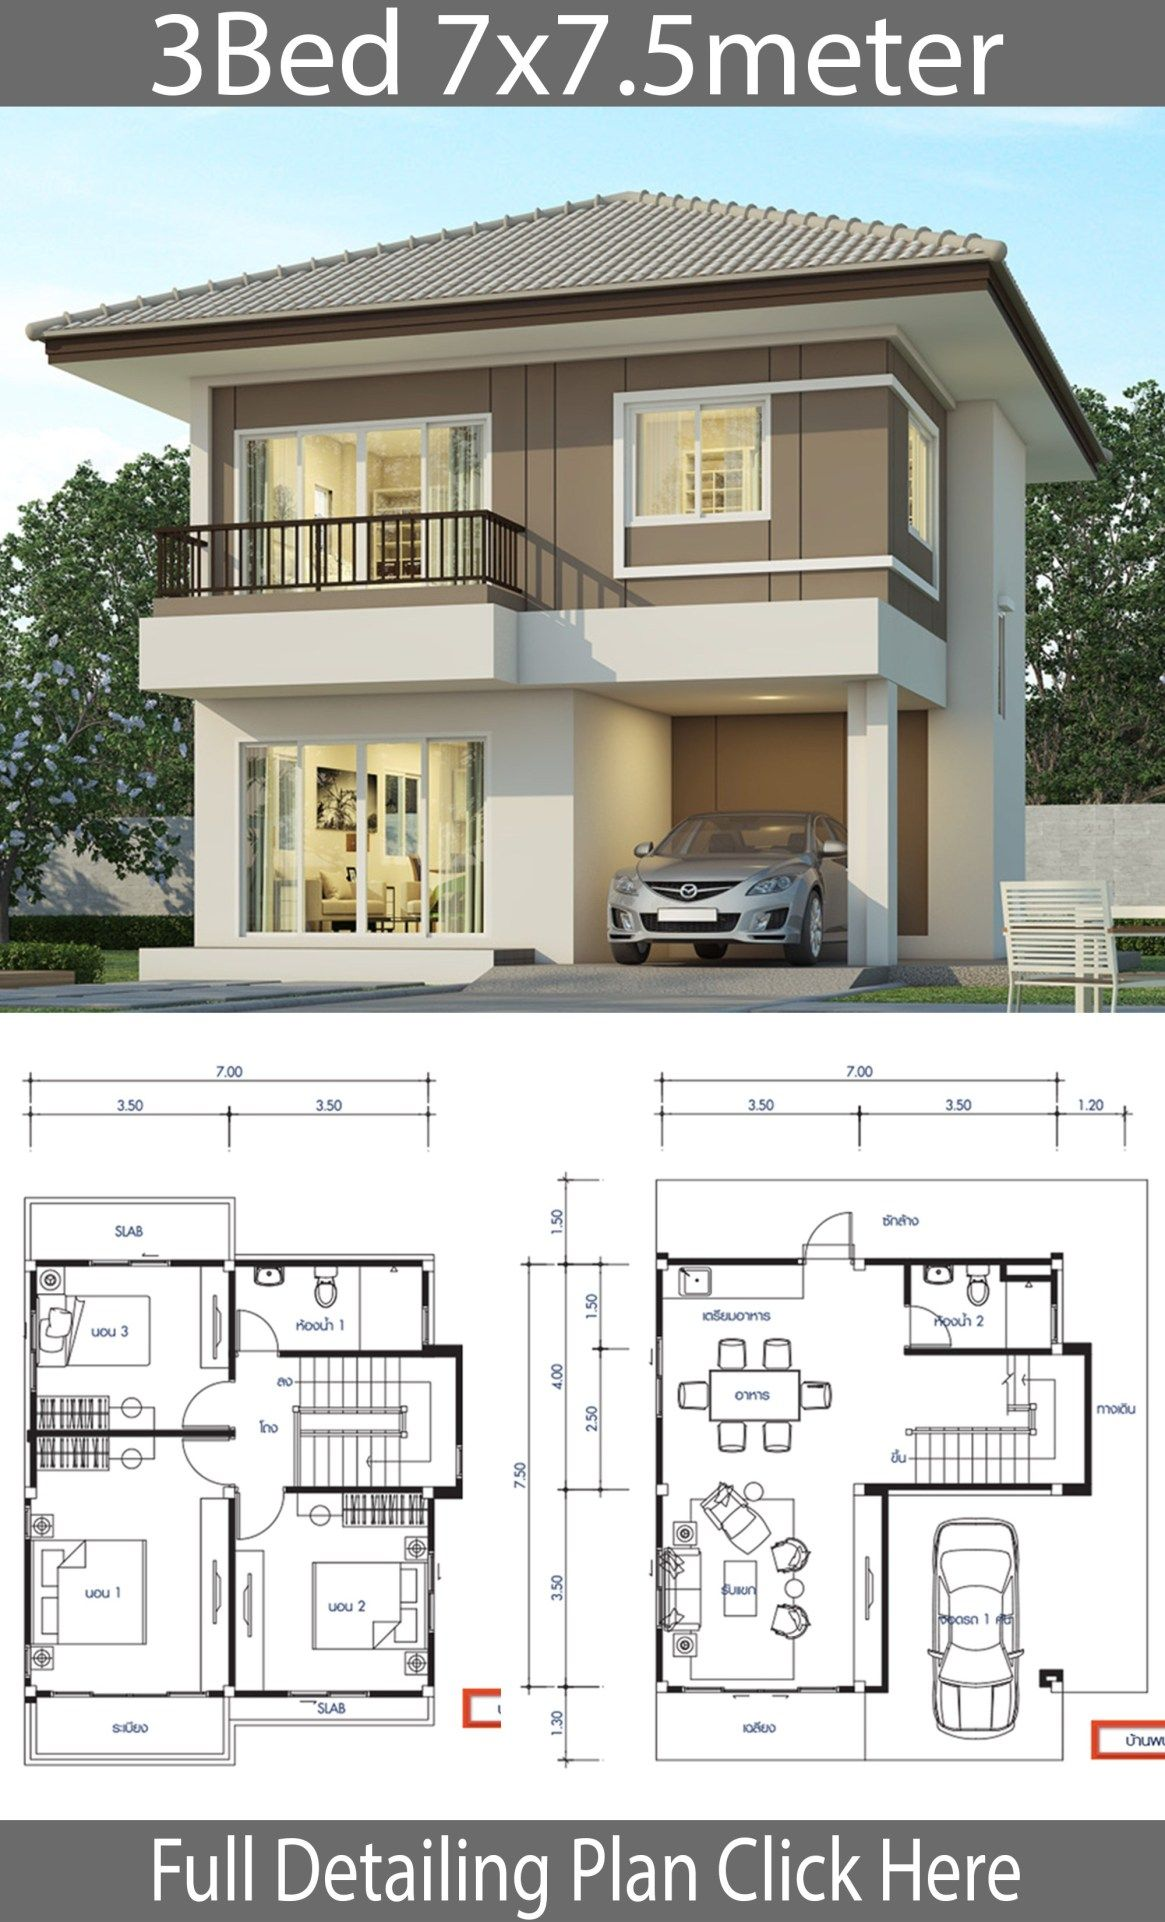 House Design Plan 7x7 5m With 3 Bedrooms Home Design With Plansearch Bungalow House Design Duplex House Design 2 Storey House Design